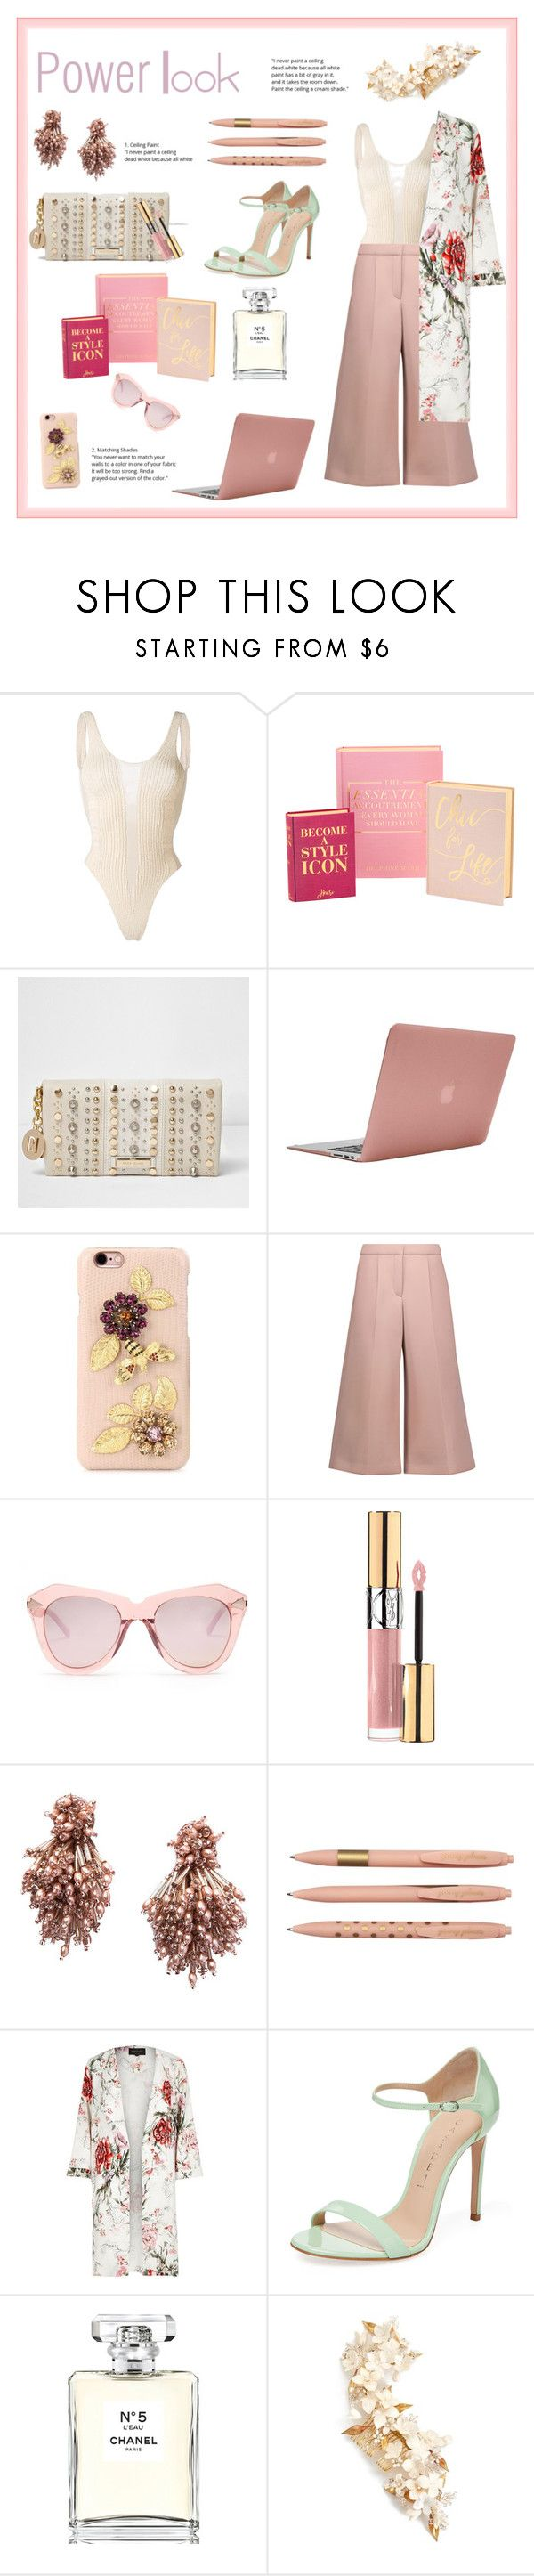 """""""Anything you can do, I can do better."""" by rachel-marie-maximo-mapson ❤ liked on Polyvore featuring Yeezy by Kanye West, River Island, Incase, Dolce&Gabbana, Simone Rocha, Karen Walker, Yves Saint Laurent, Mignonne Gavigan, Casadei and Chanel"""